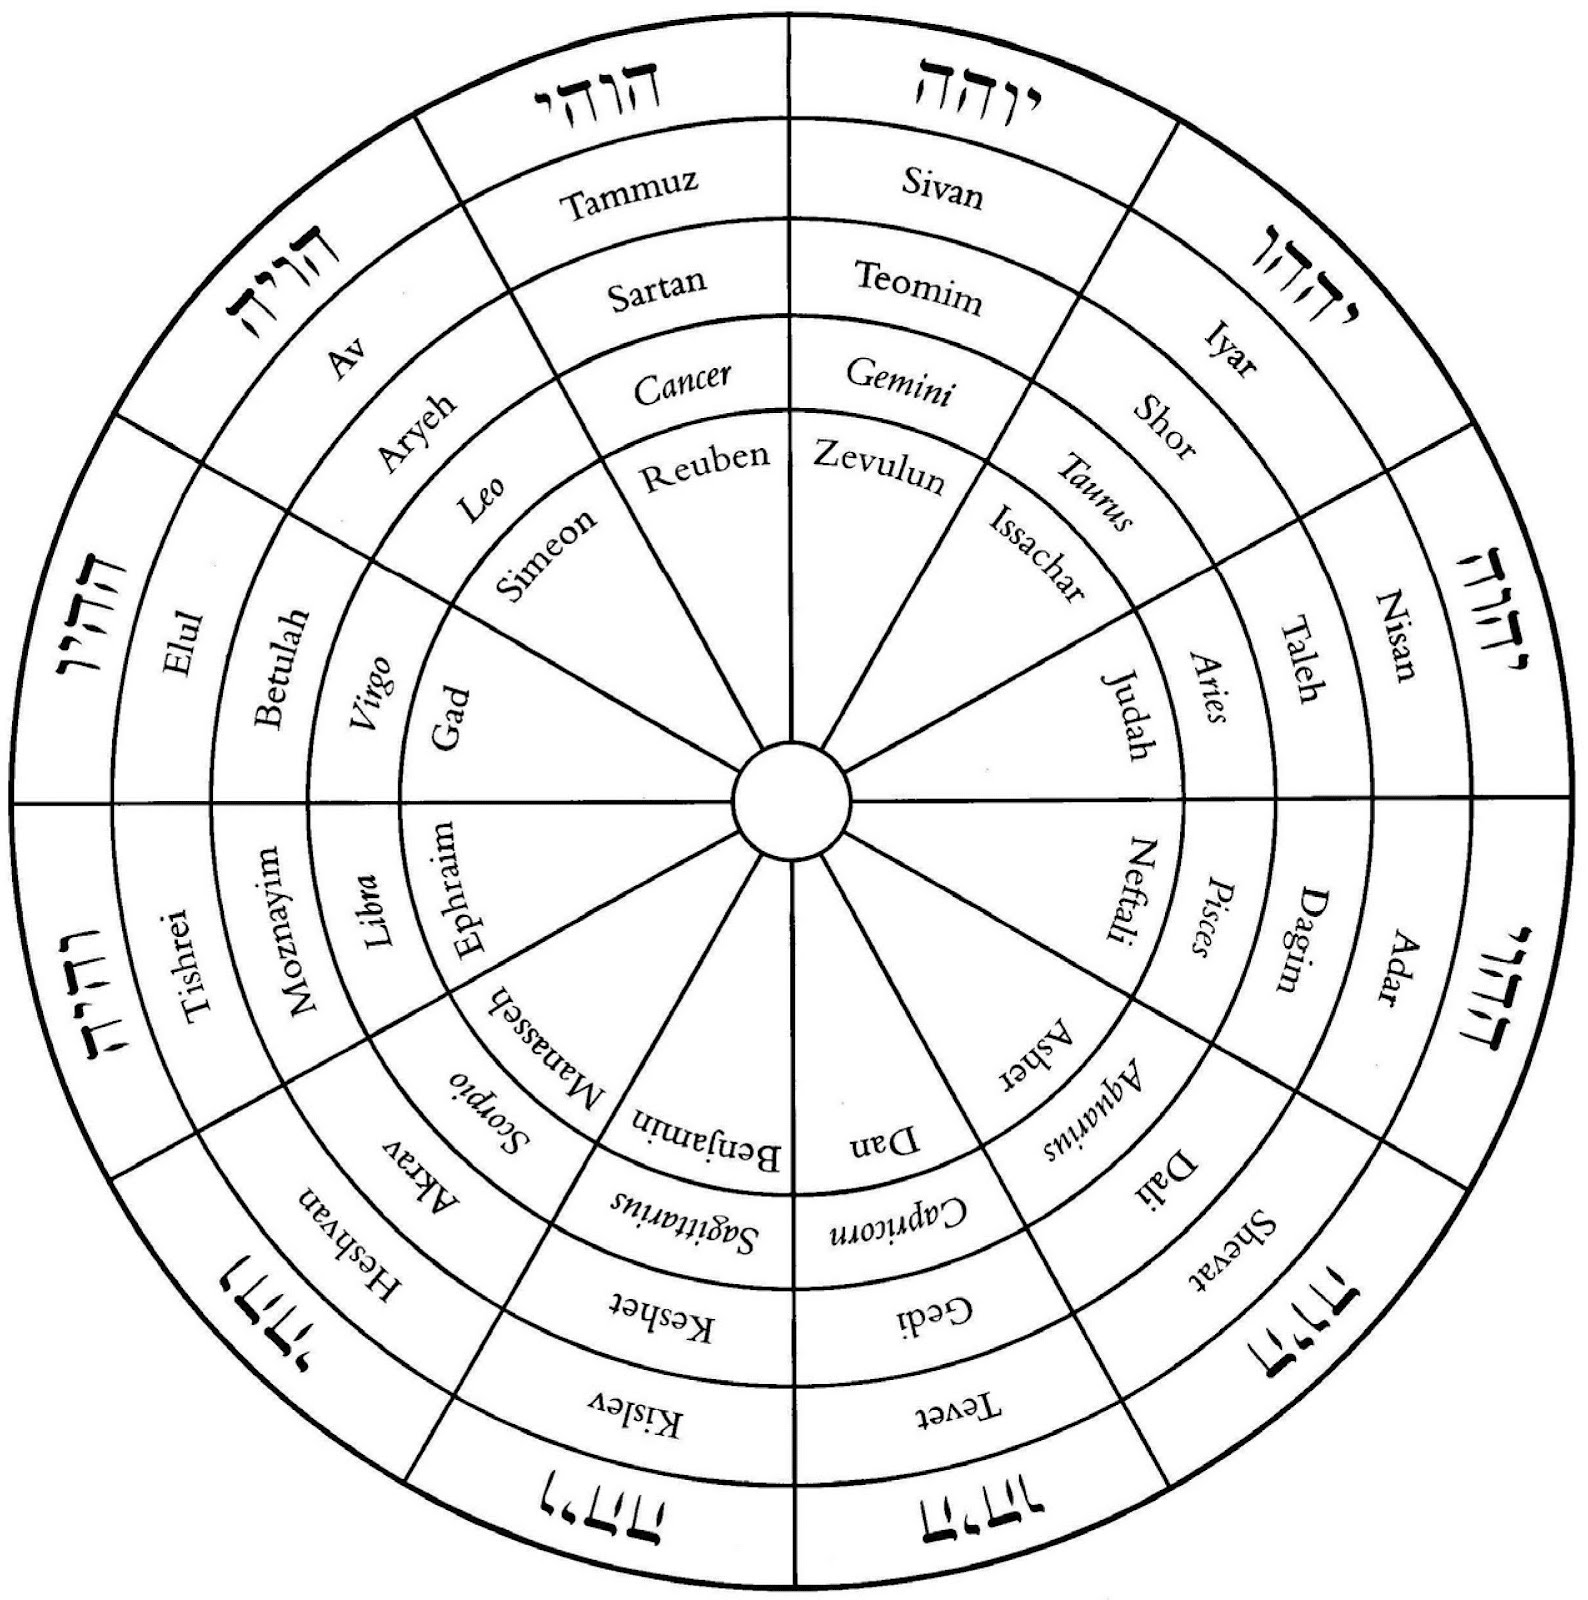 an introduction to the analysis of kabbalah It was in kabbalah - the esoteric and mystical tradition of judaism - that the  absolute ehyeh of exodus 3:14b came to assume particular importance in jewish .